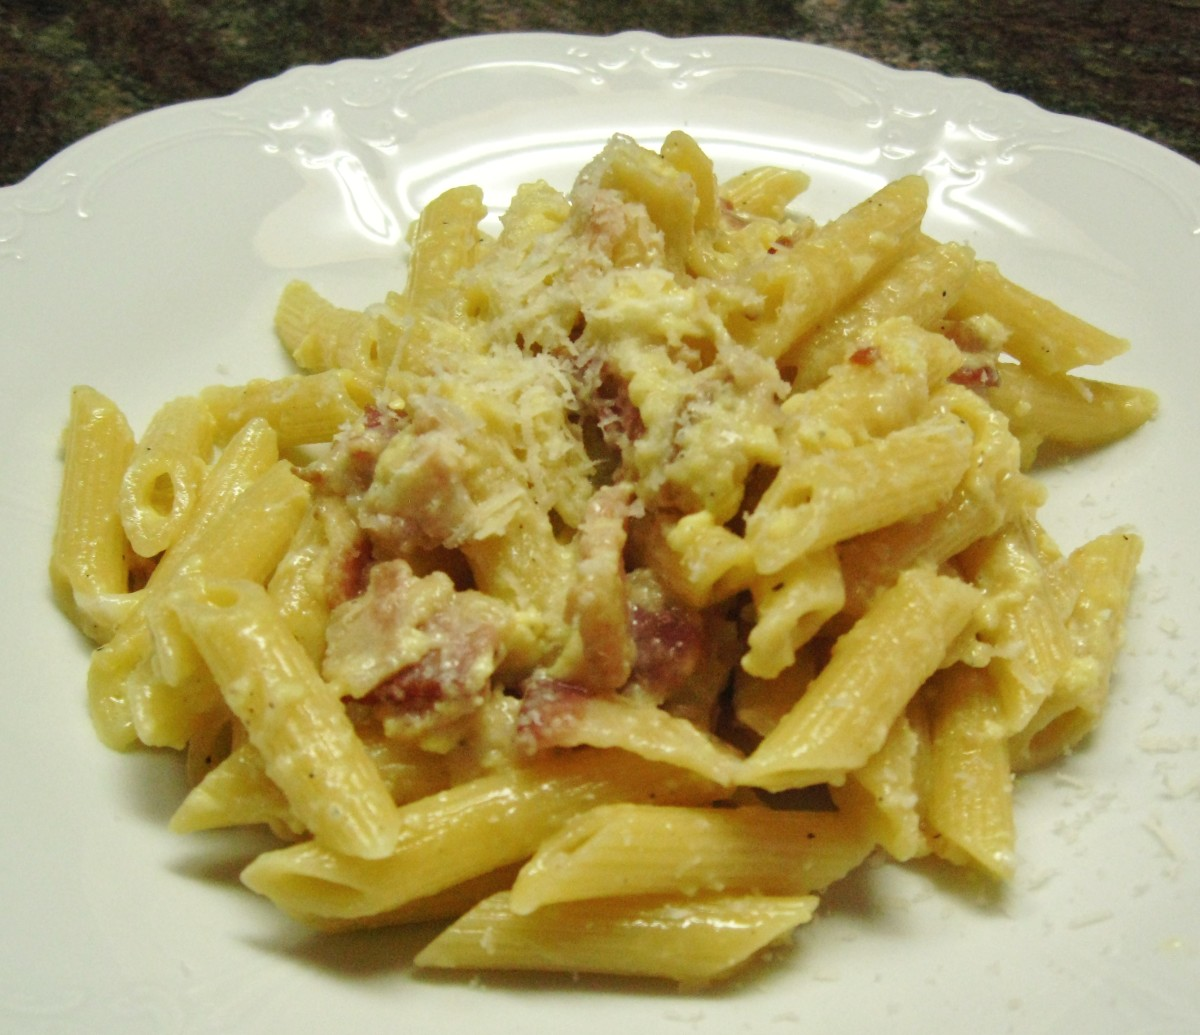 Penne Carbonara, pasta with eggs, bacon, and Parmesan cheese.